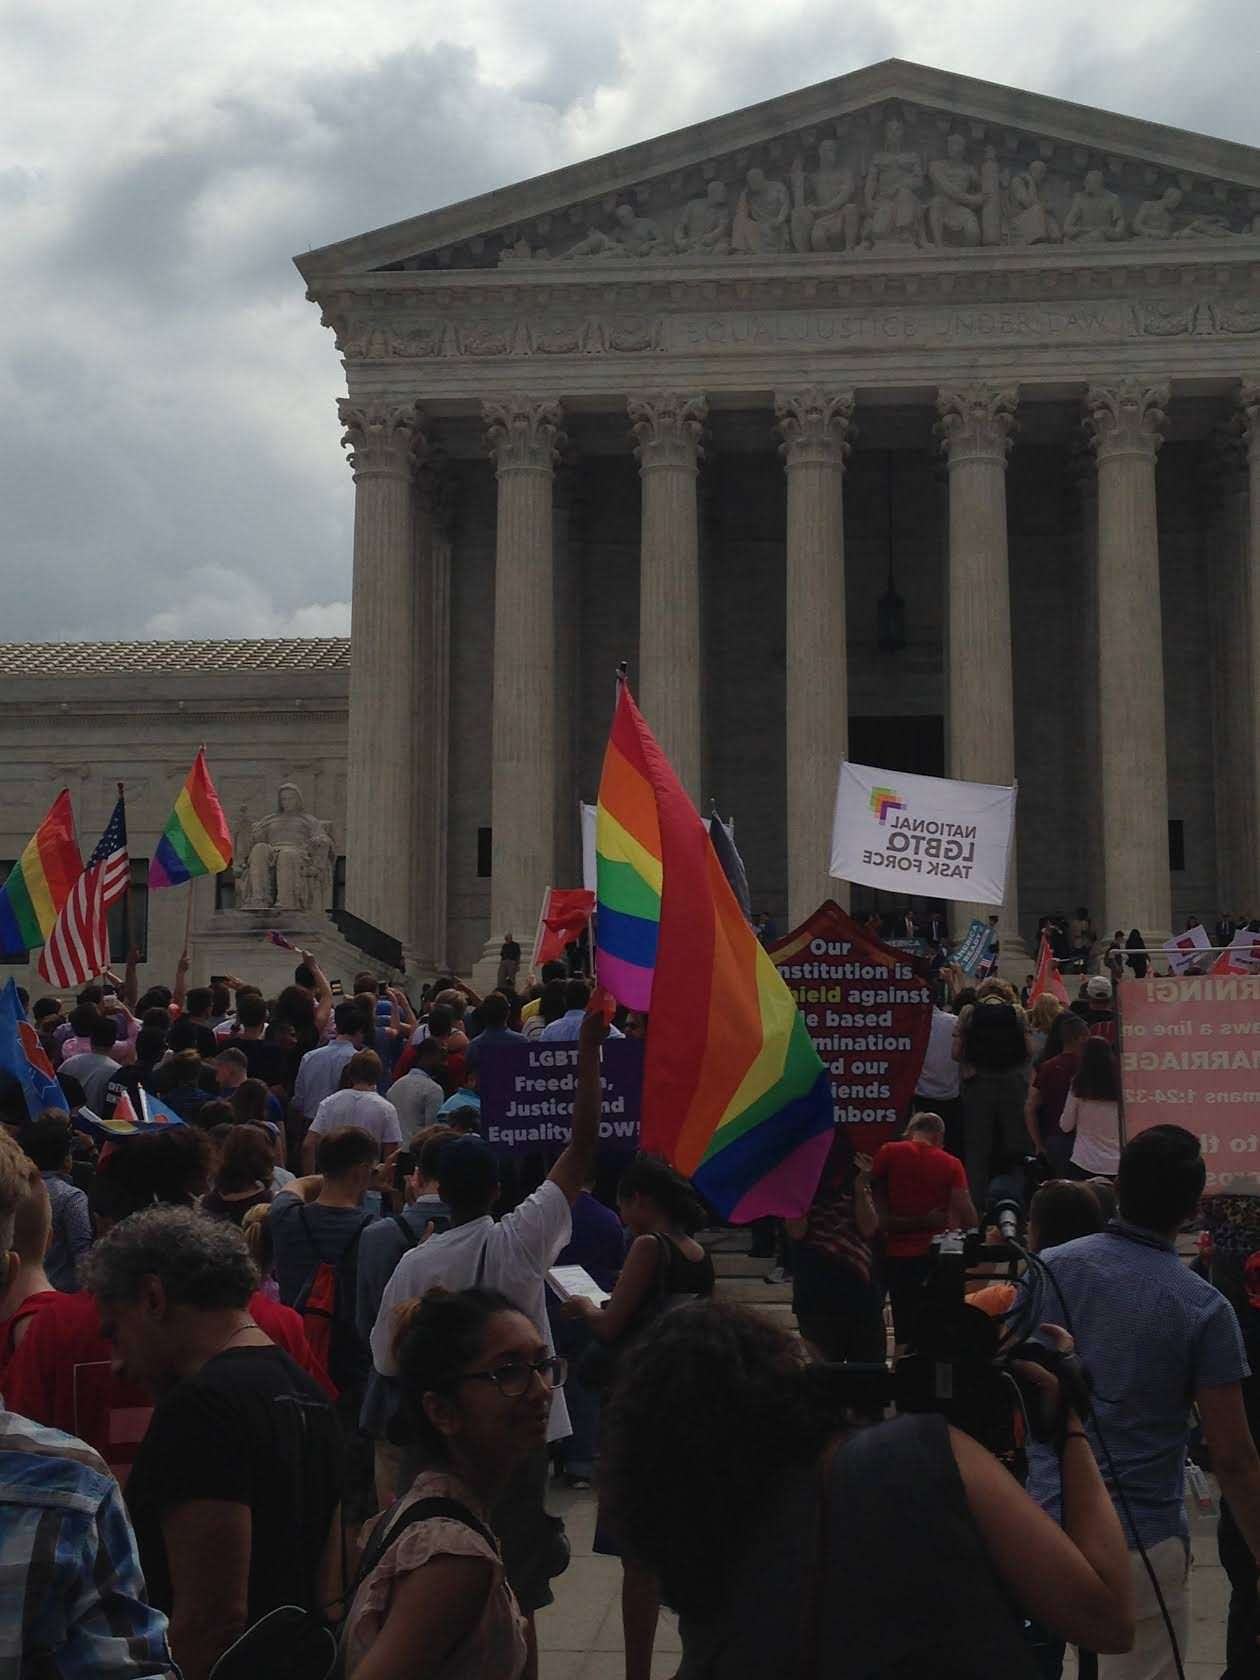 People rally outside the Supreme Court after SCOTUS handed down its gay marriage decision